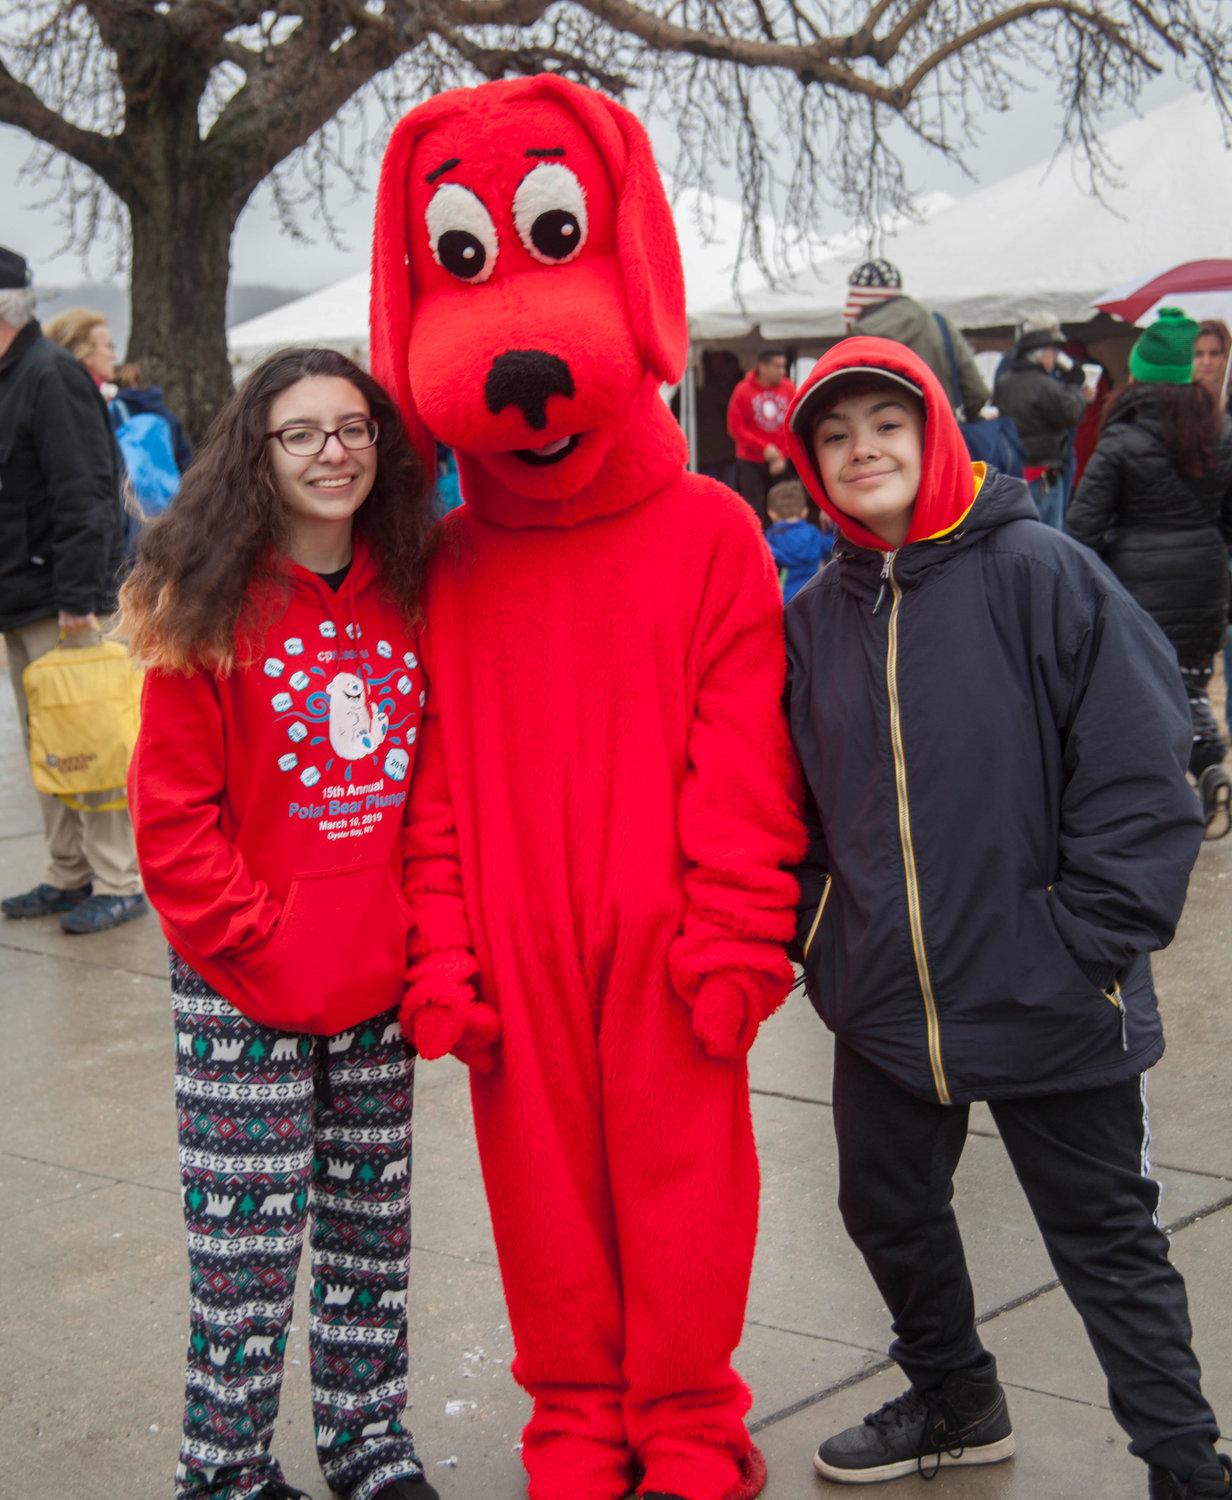 Amelia and Jay Tisk hung out with Clifford the Big Red Dog, who was there to entertain.